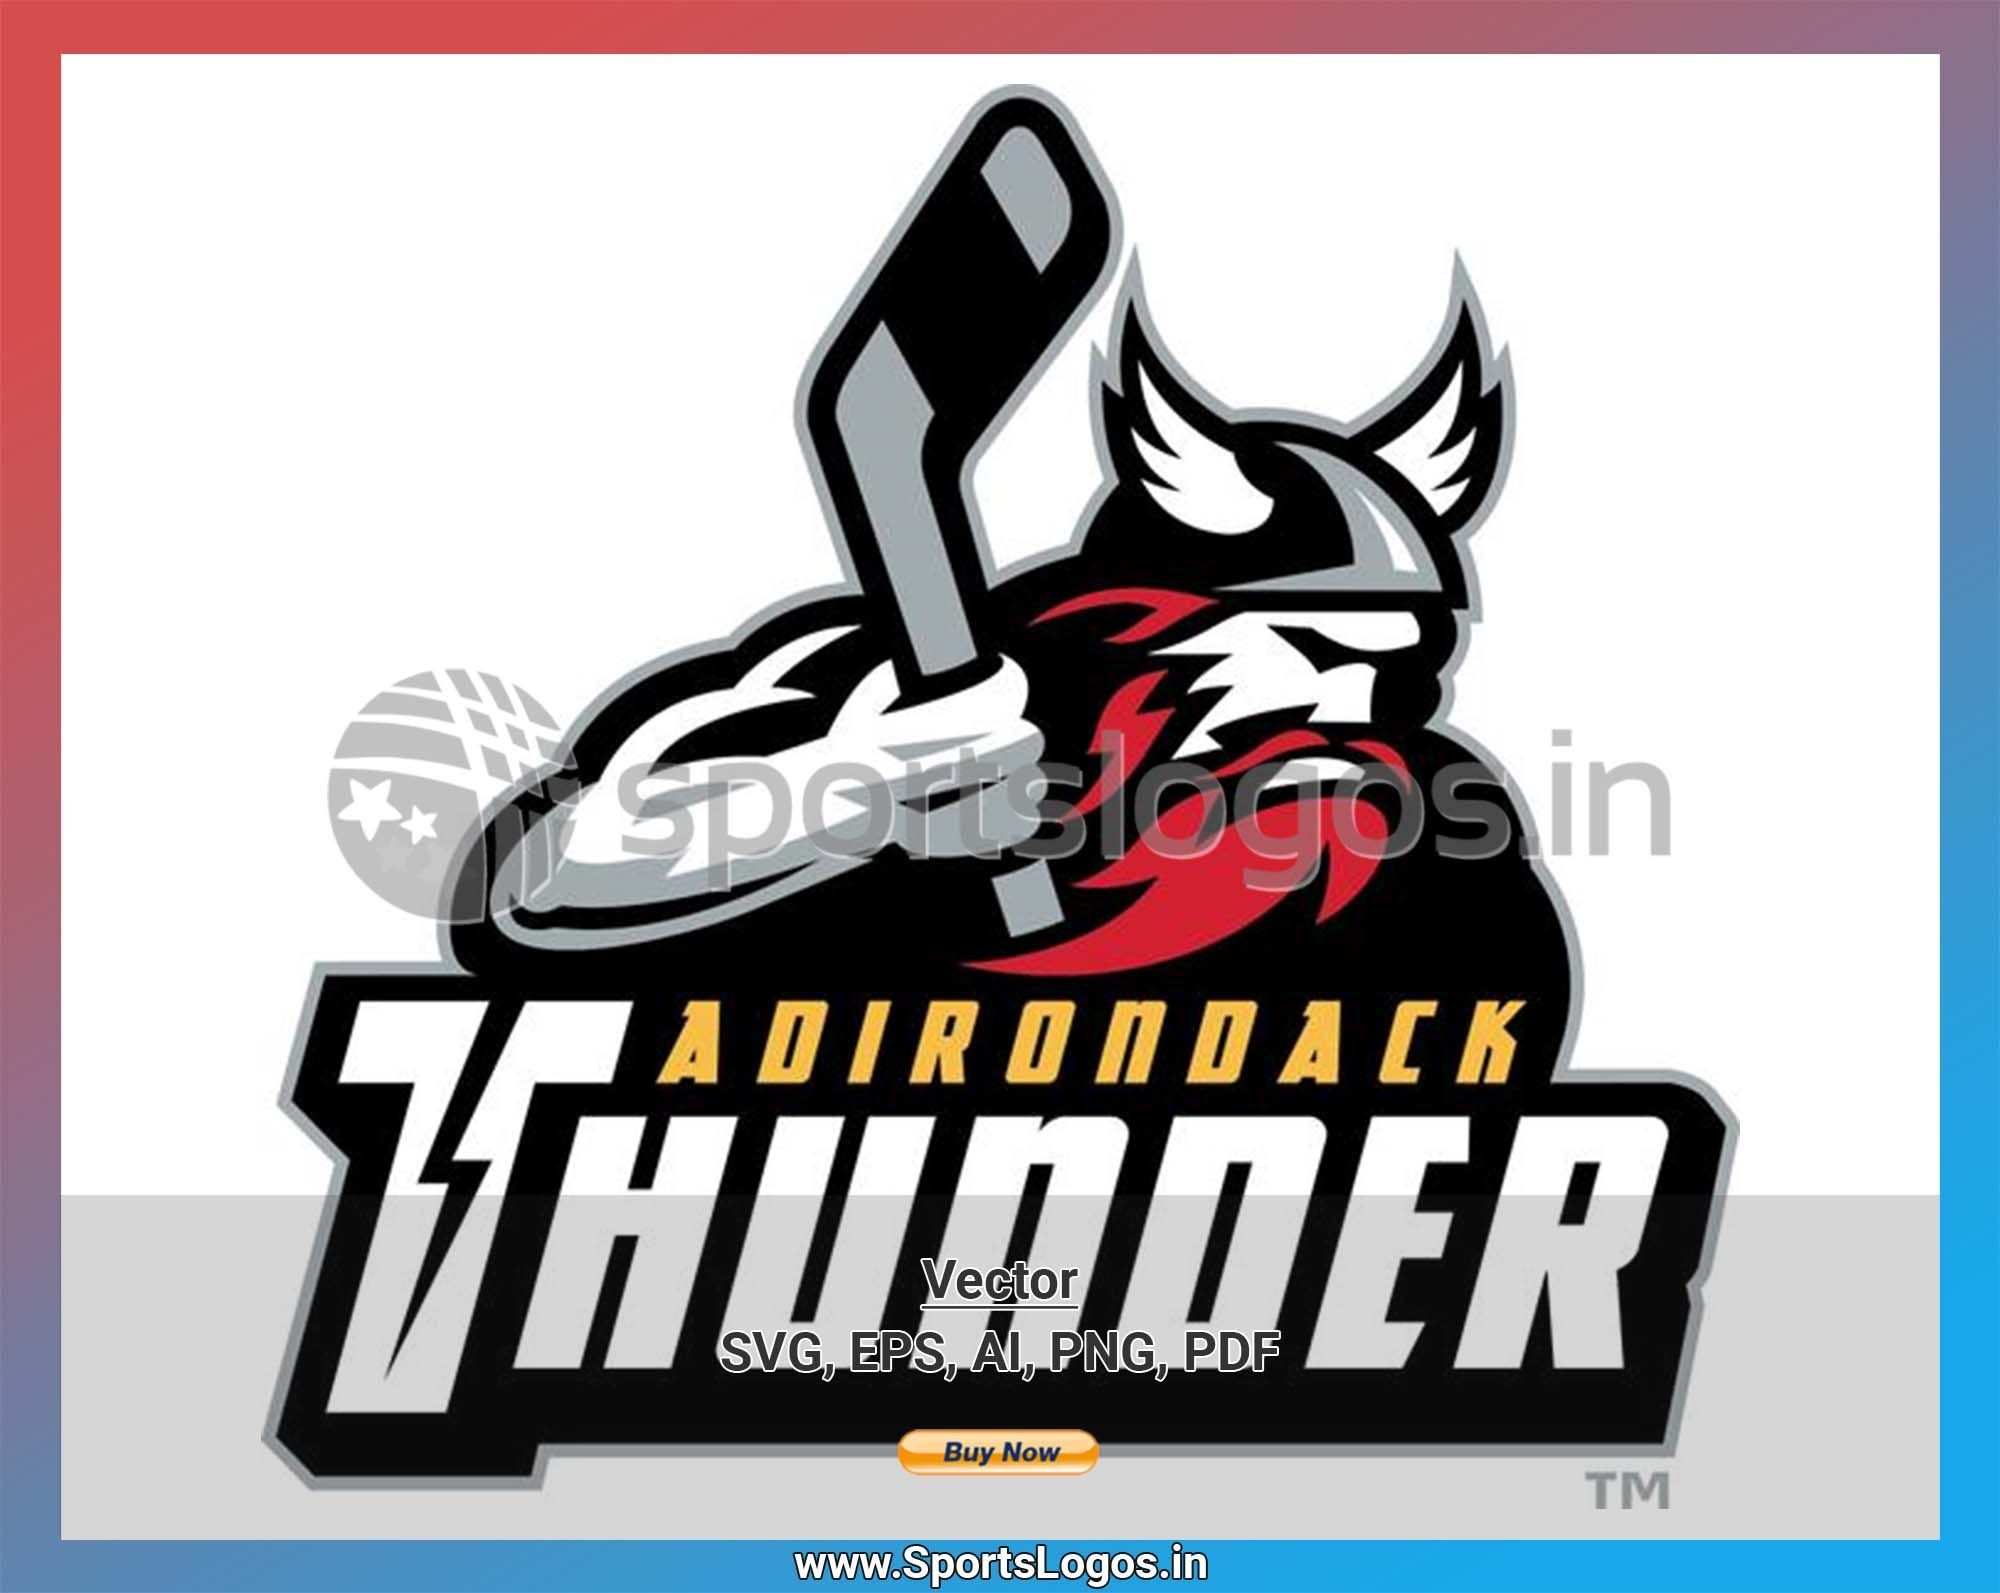 Adirondack Thunder 2015/16, ECHL, Hockey Sports Vector